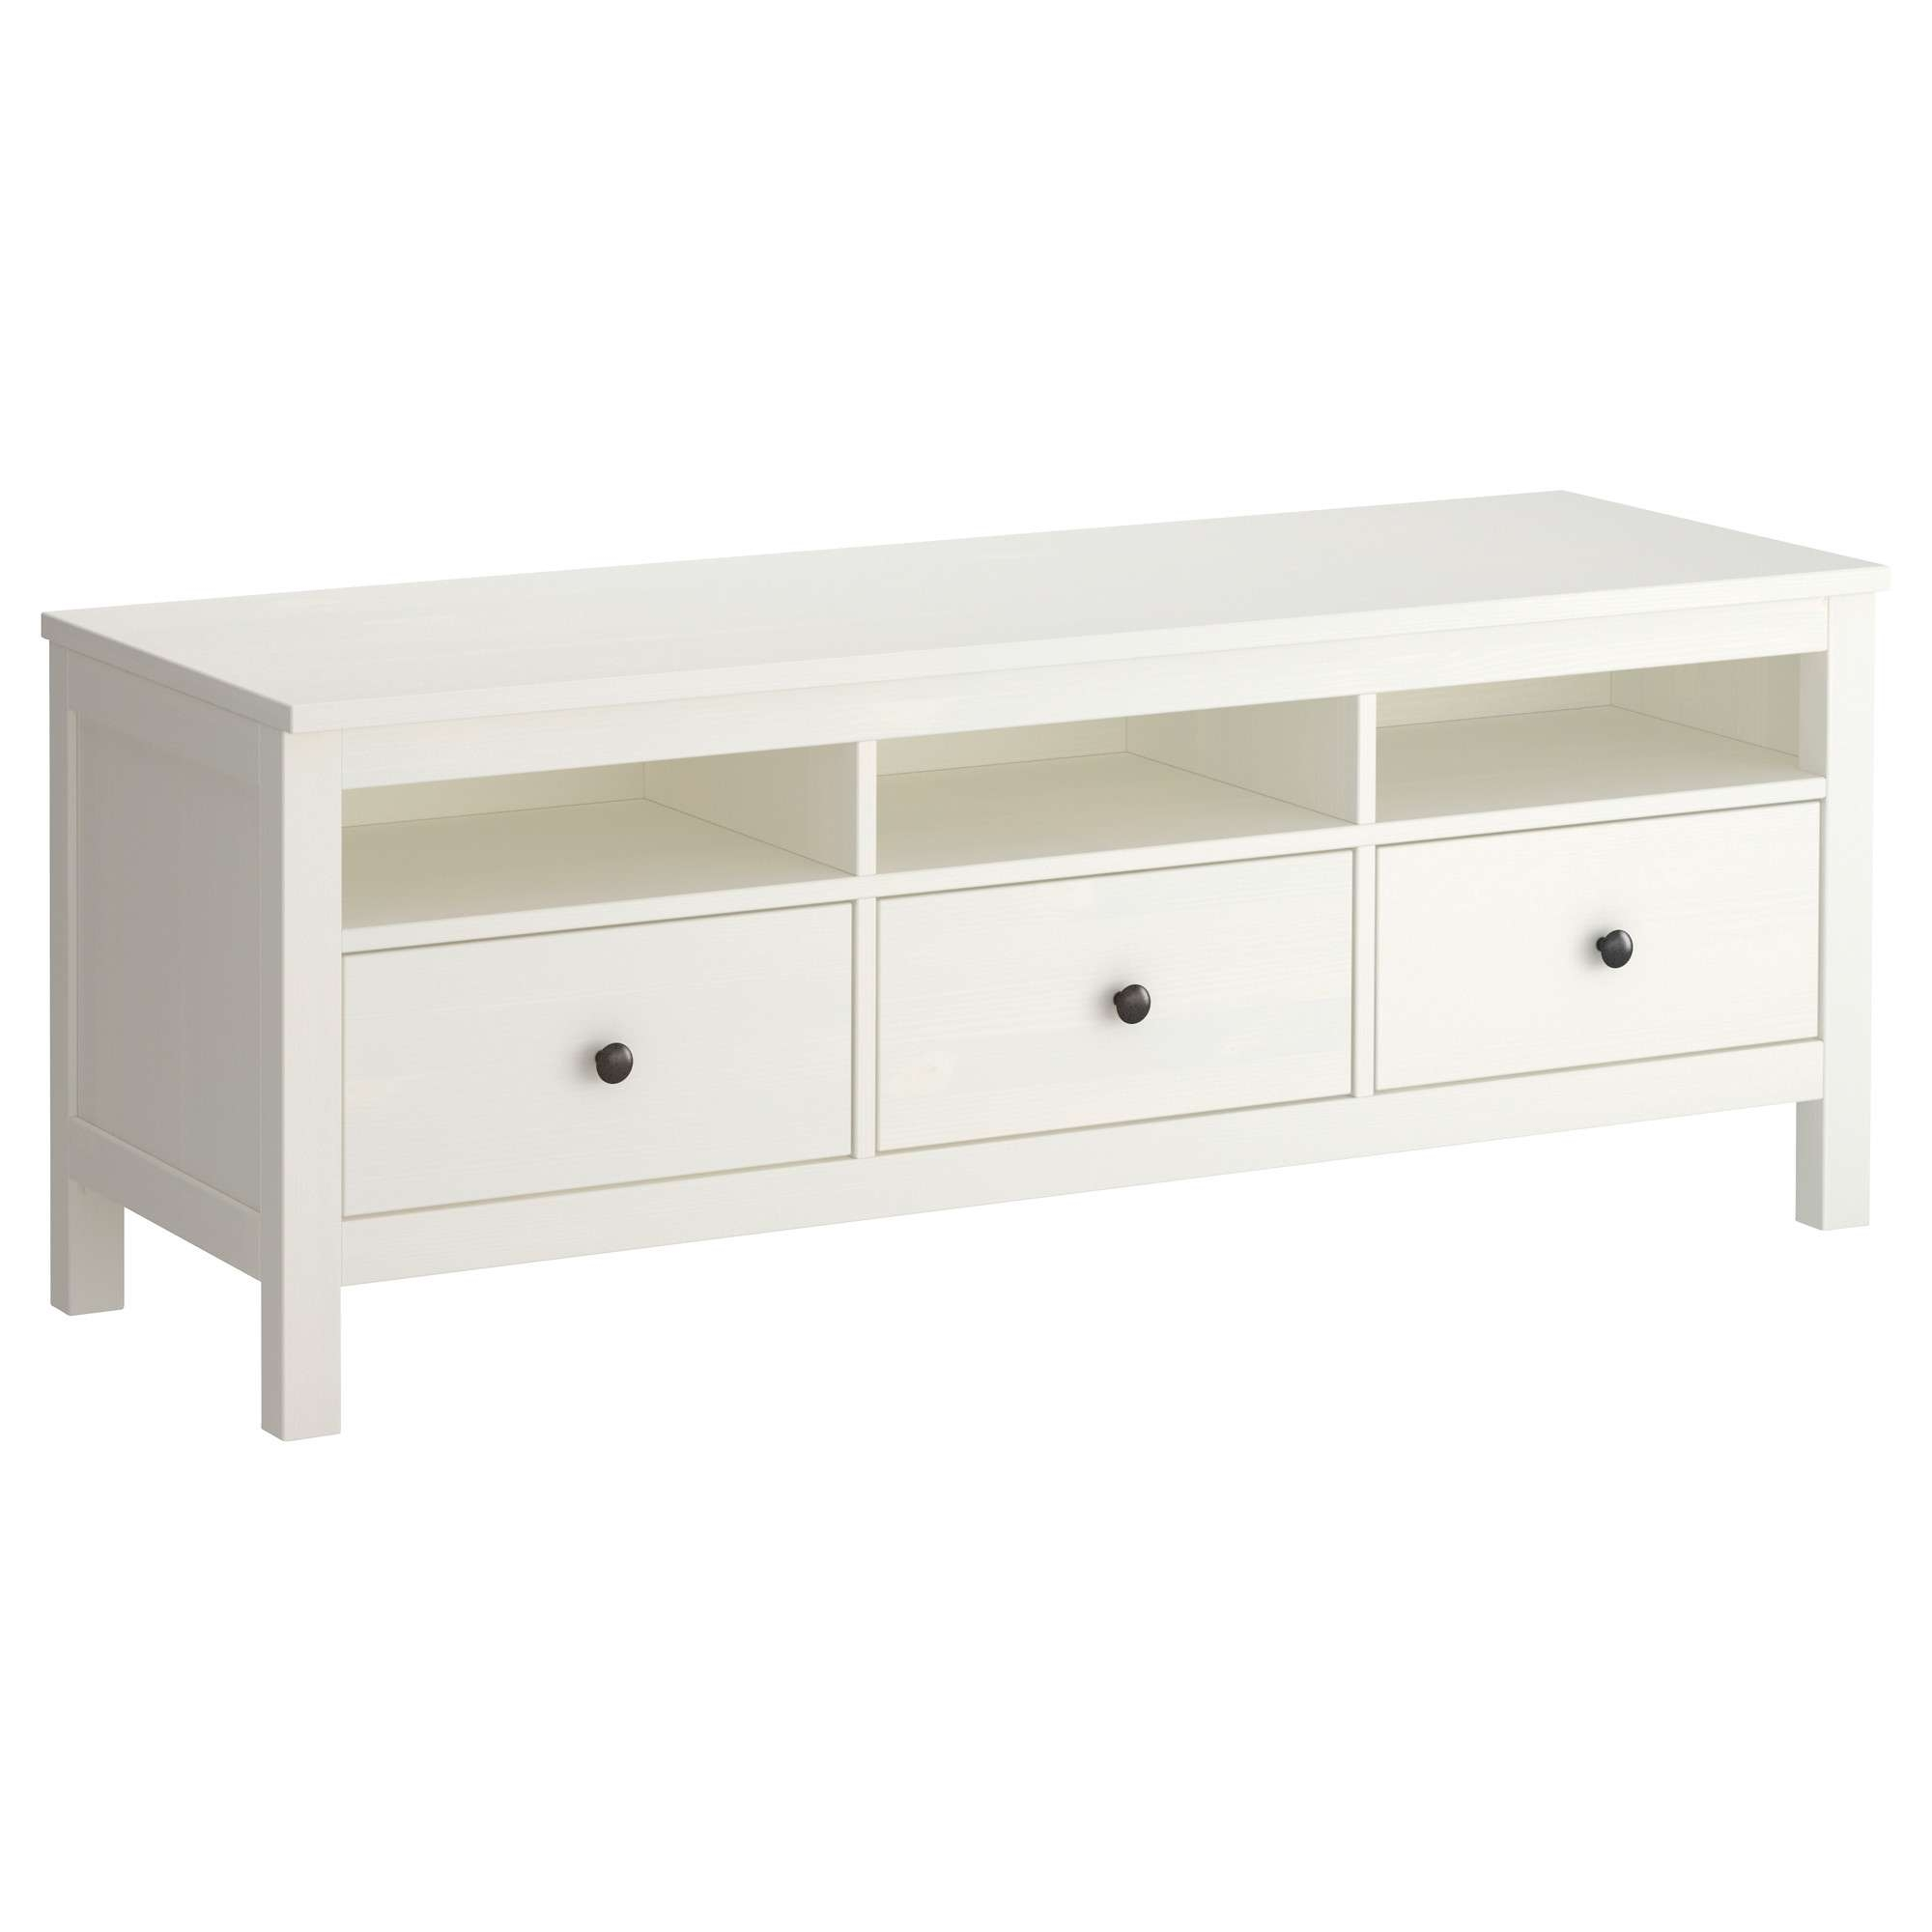 Tv Stands & Tv Units | Ikea Throughout White Wooden Tv Stands (View 16 of 20)